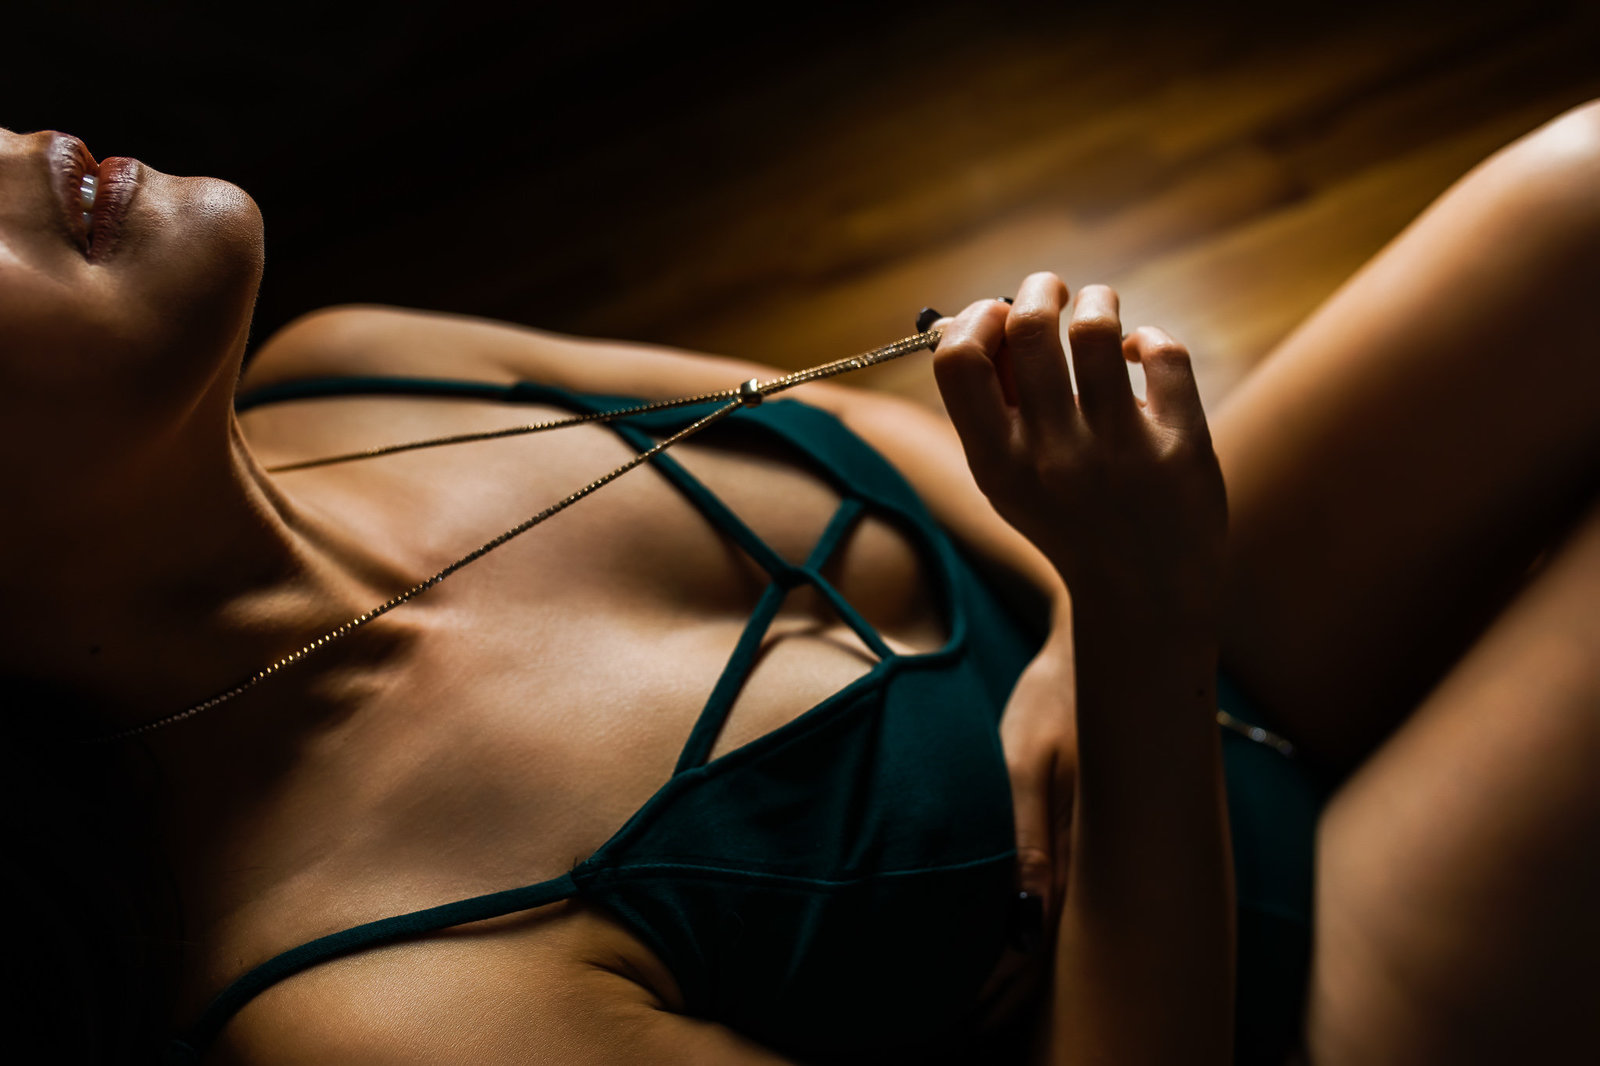 Boudoir photo of a woman in a green bodysuit